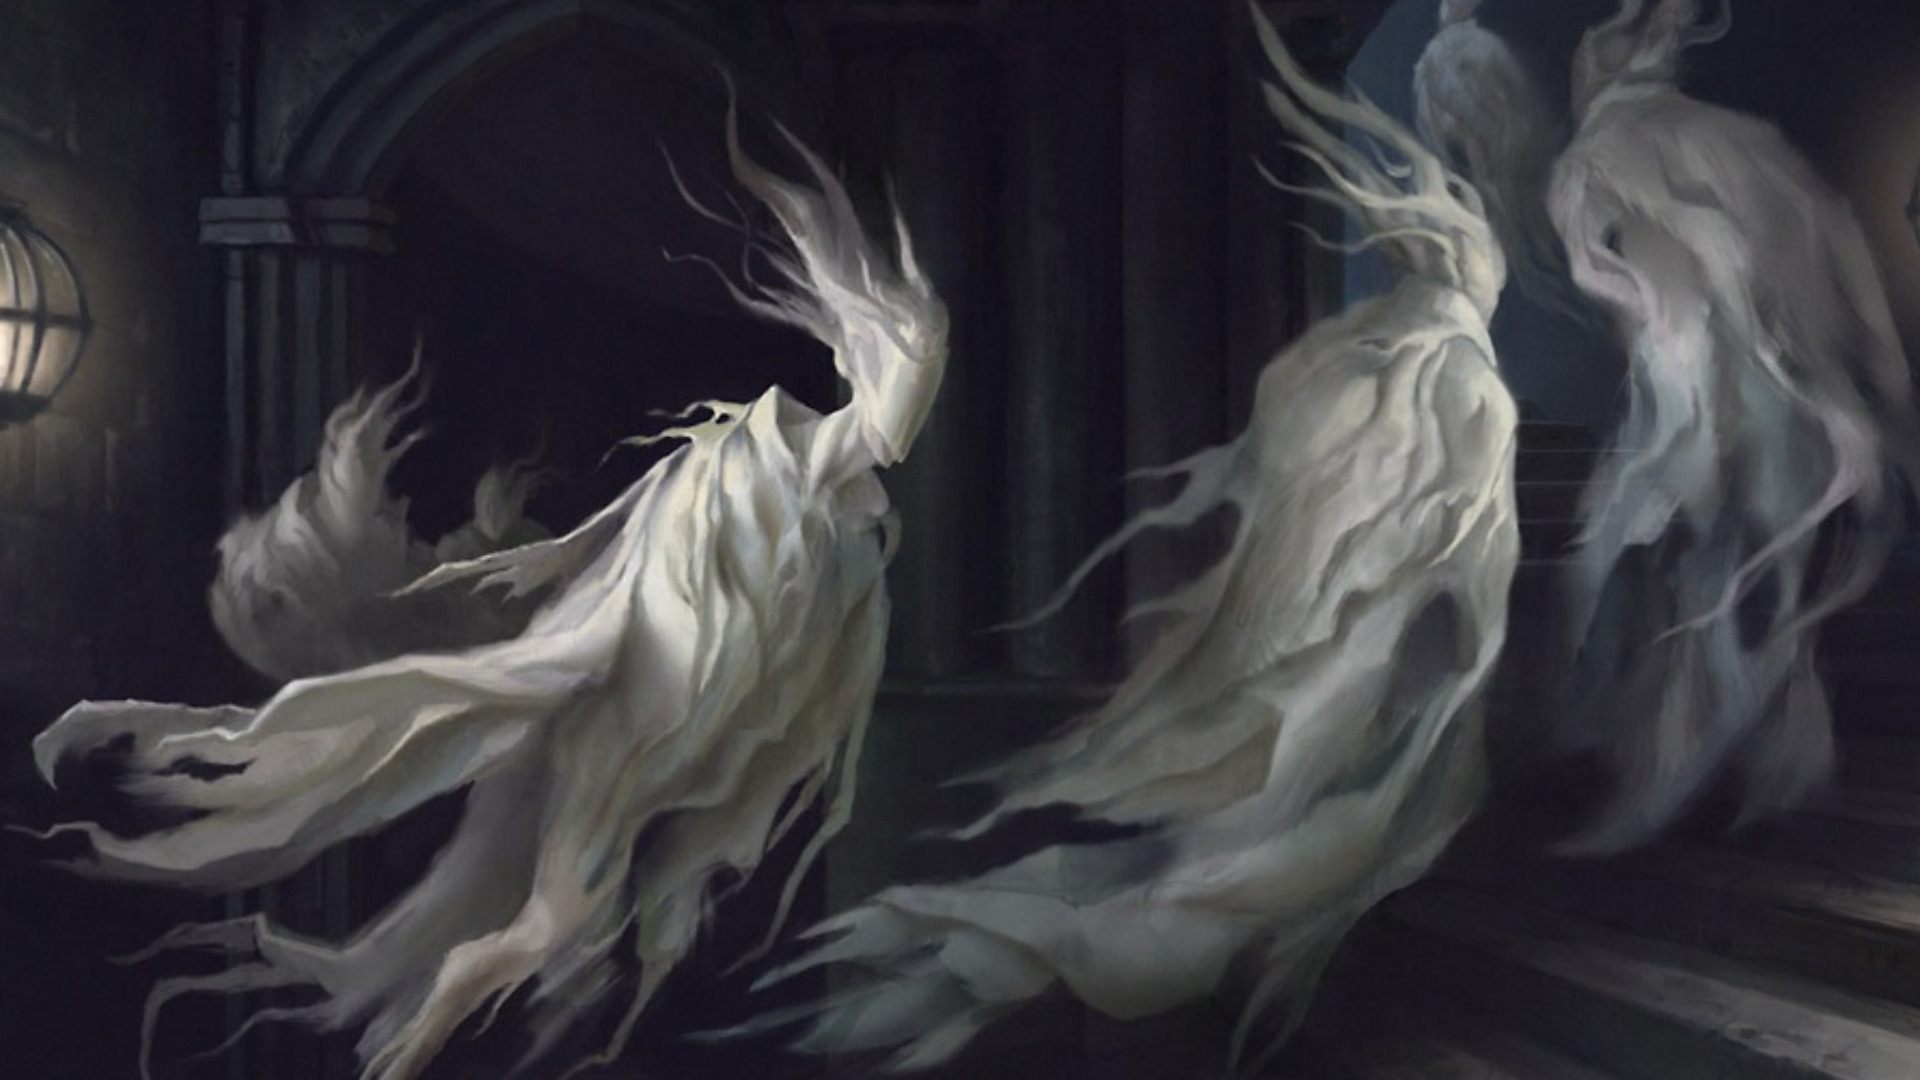 ghost computer wallpapers desktop backgrounds 1920x1080 id266721